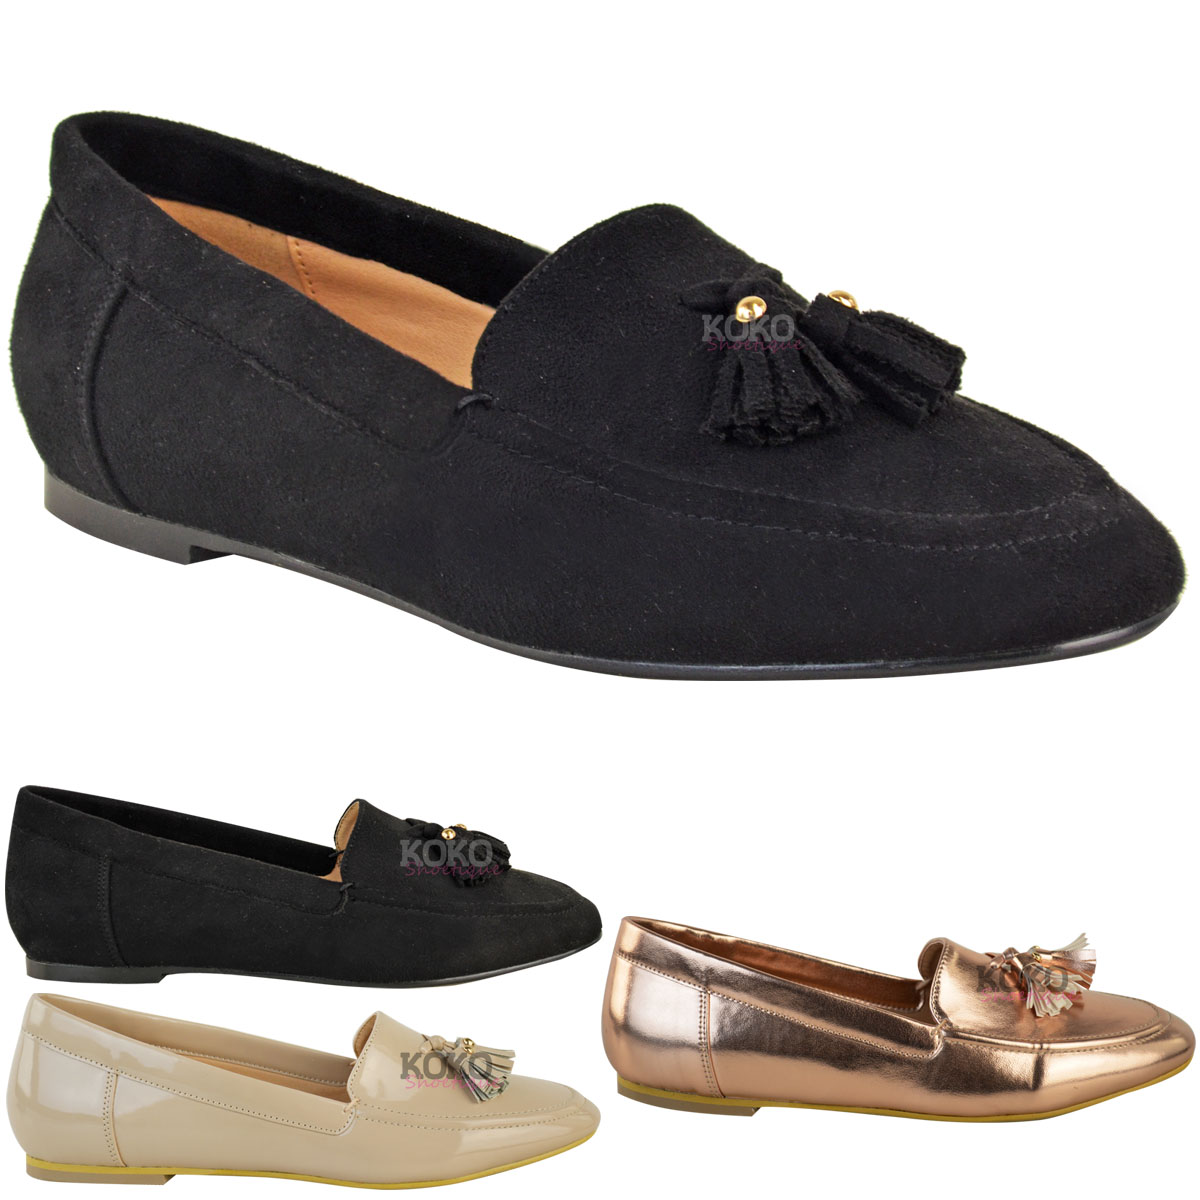 Womens-Ladies-Flat-Casual-Office-Tassel-Loafers-Pumps-